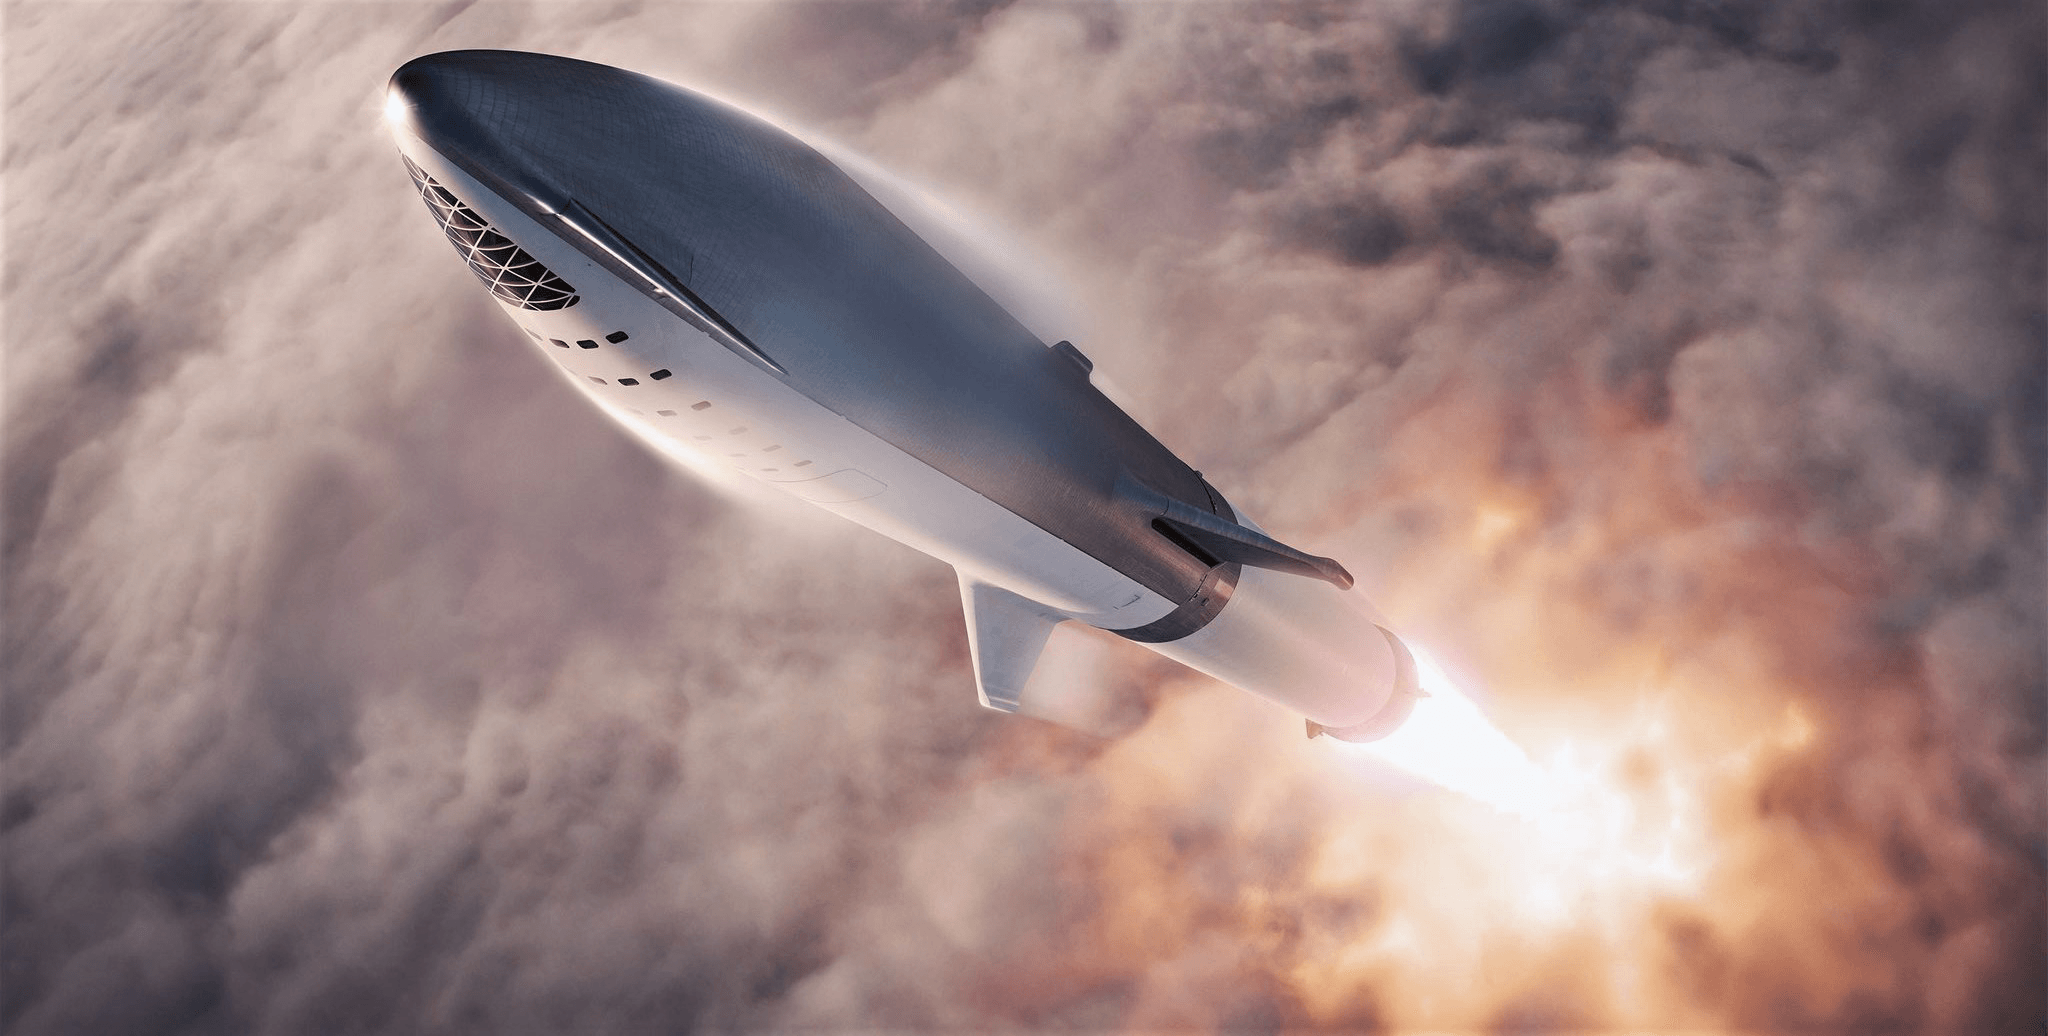 News					SpaceX CEO Elon Musk teases BFR update with new rocket launch renders